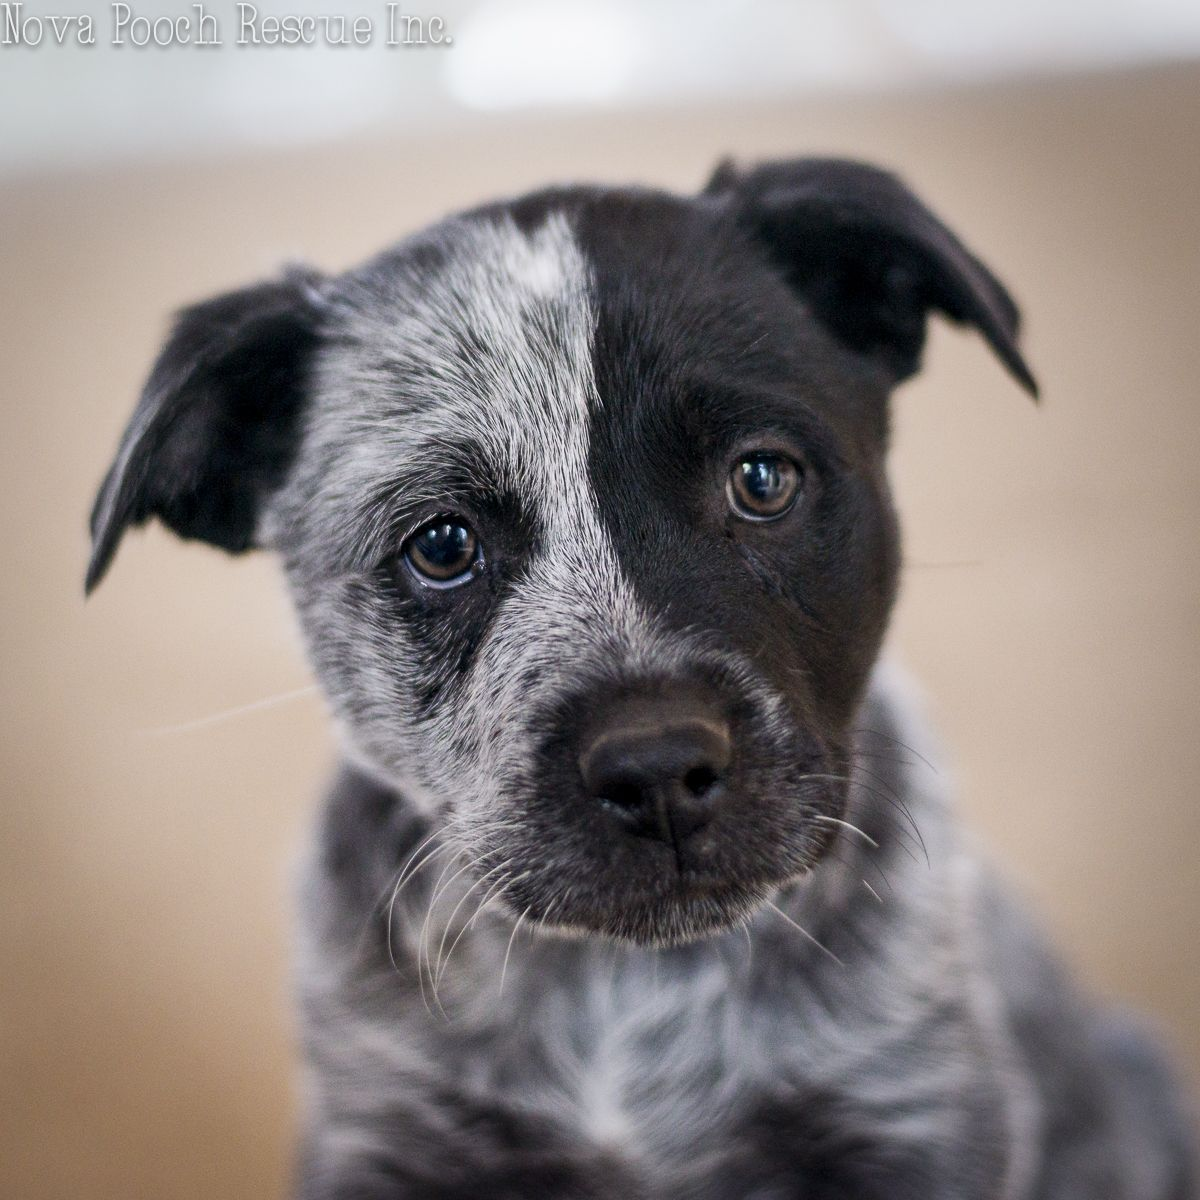 Australian stubby tail cattle dog pup. Dogs, Cattle dog